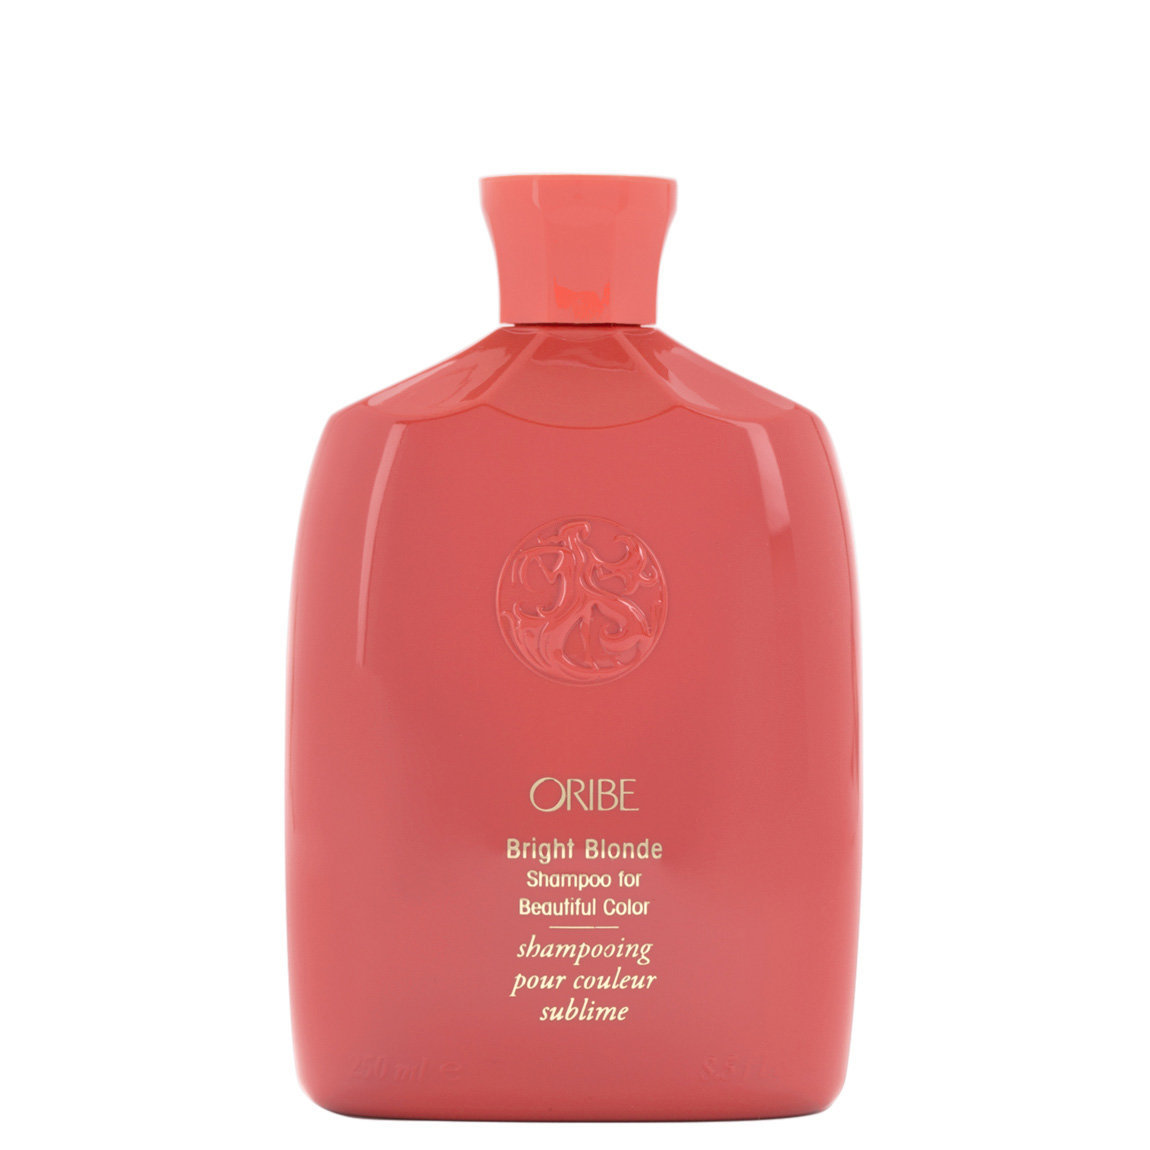 Oribe Bright Blonde Shampoo for Beautiful Color 8.5 fl oz product smear.